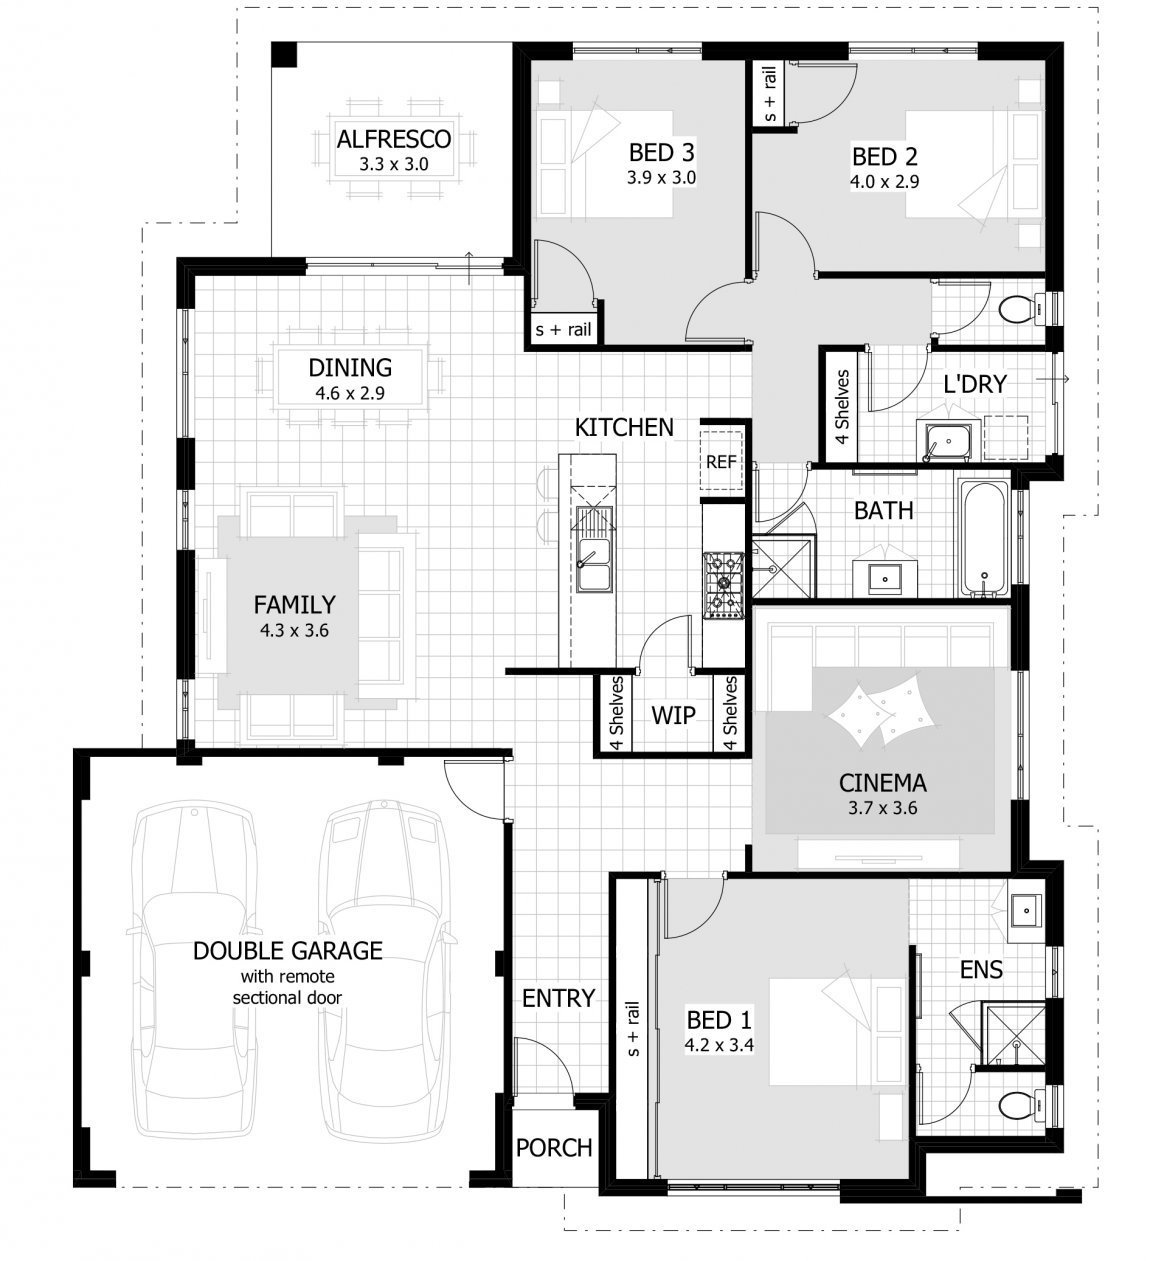 Best Typical Master Bedroom Size Closet Dimensions Guide With Pictures